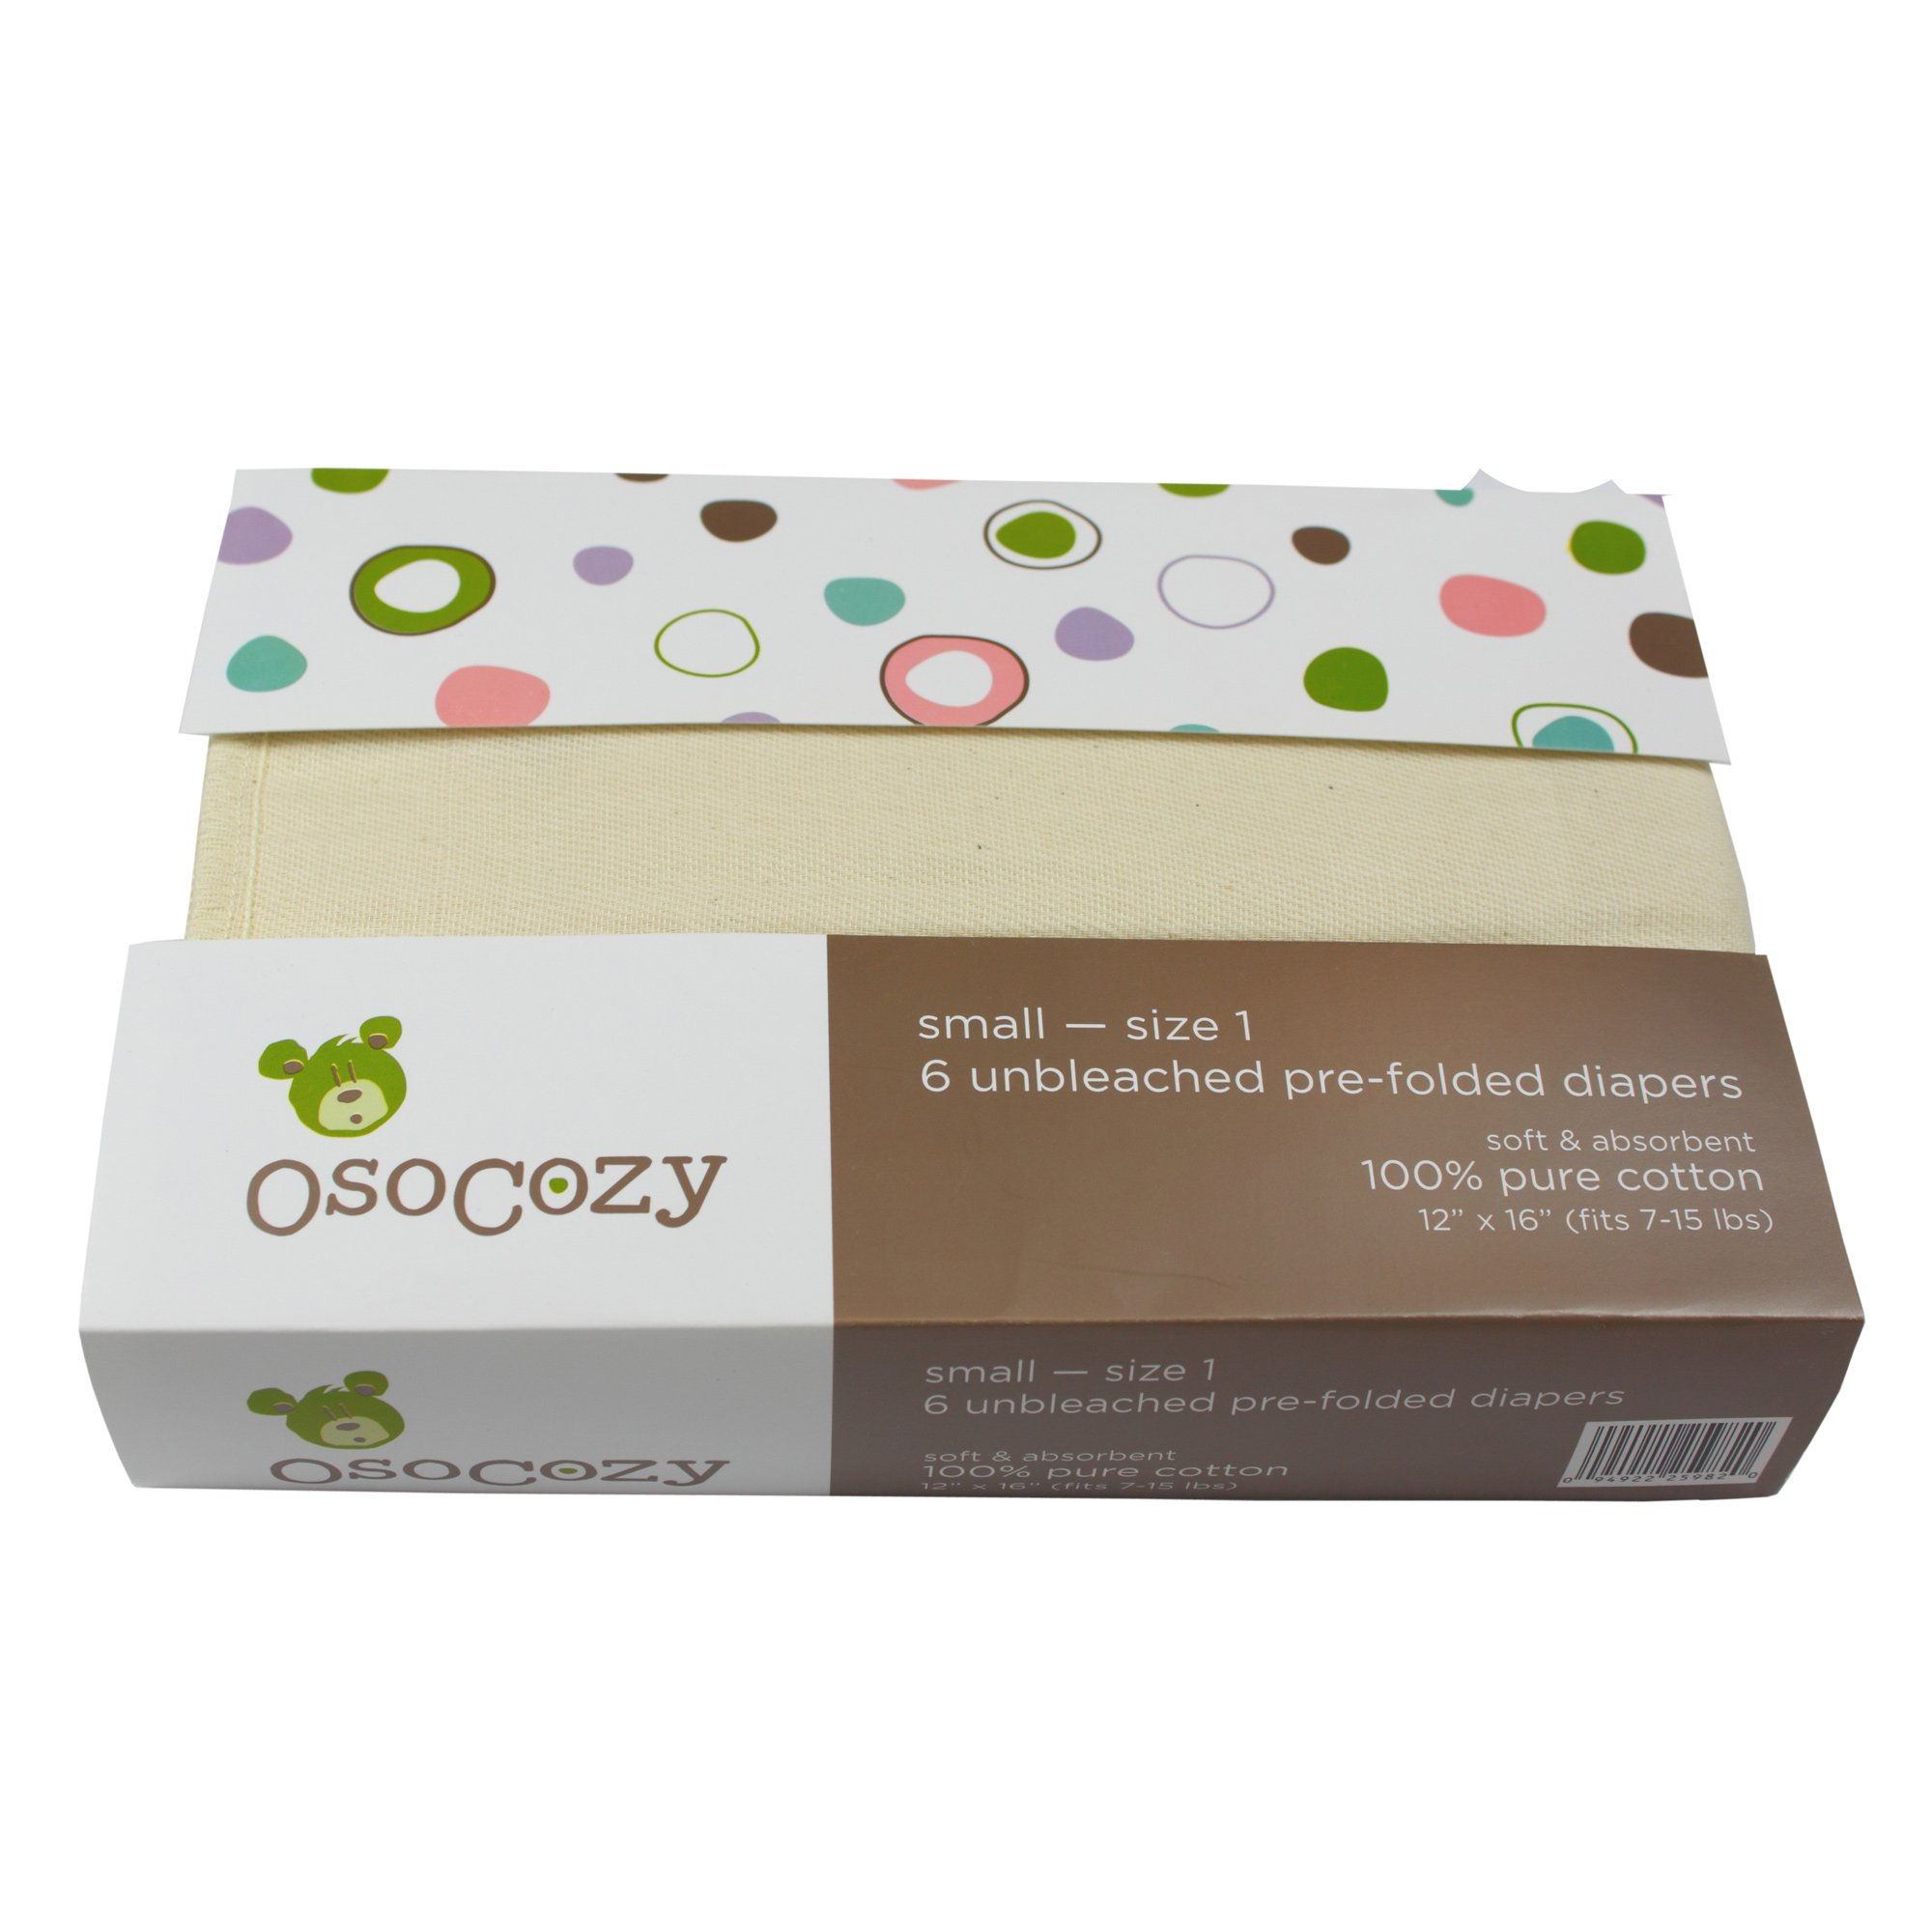 OsoCozy - Prefolds Unbleached Cloth Diapers, Size 1(7-15lbs), 6 Pack - Soft, Absorbent and Durable 100% Indian Cotton Natural Infant Diapers - Highest Quality & Best-Selling Cloth Diapers Sold Online